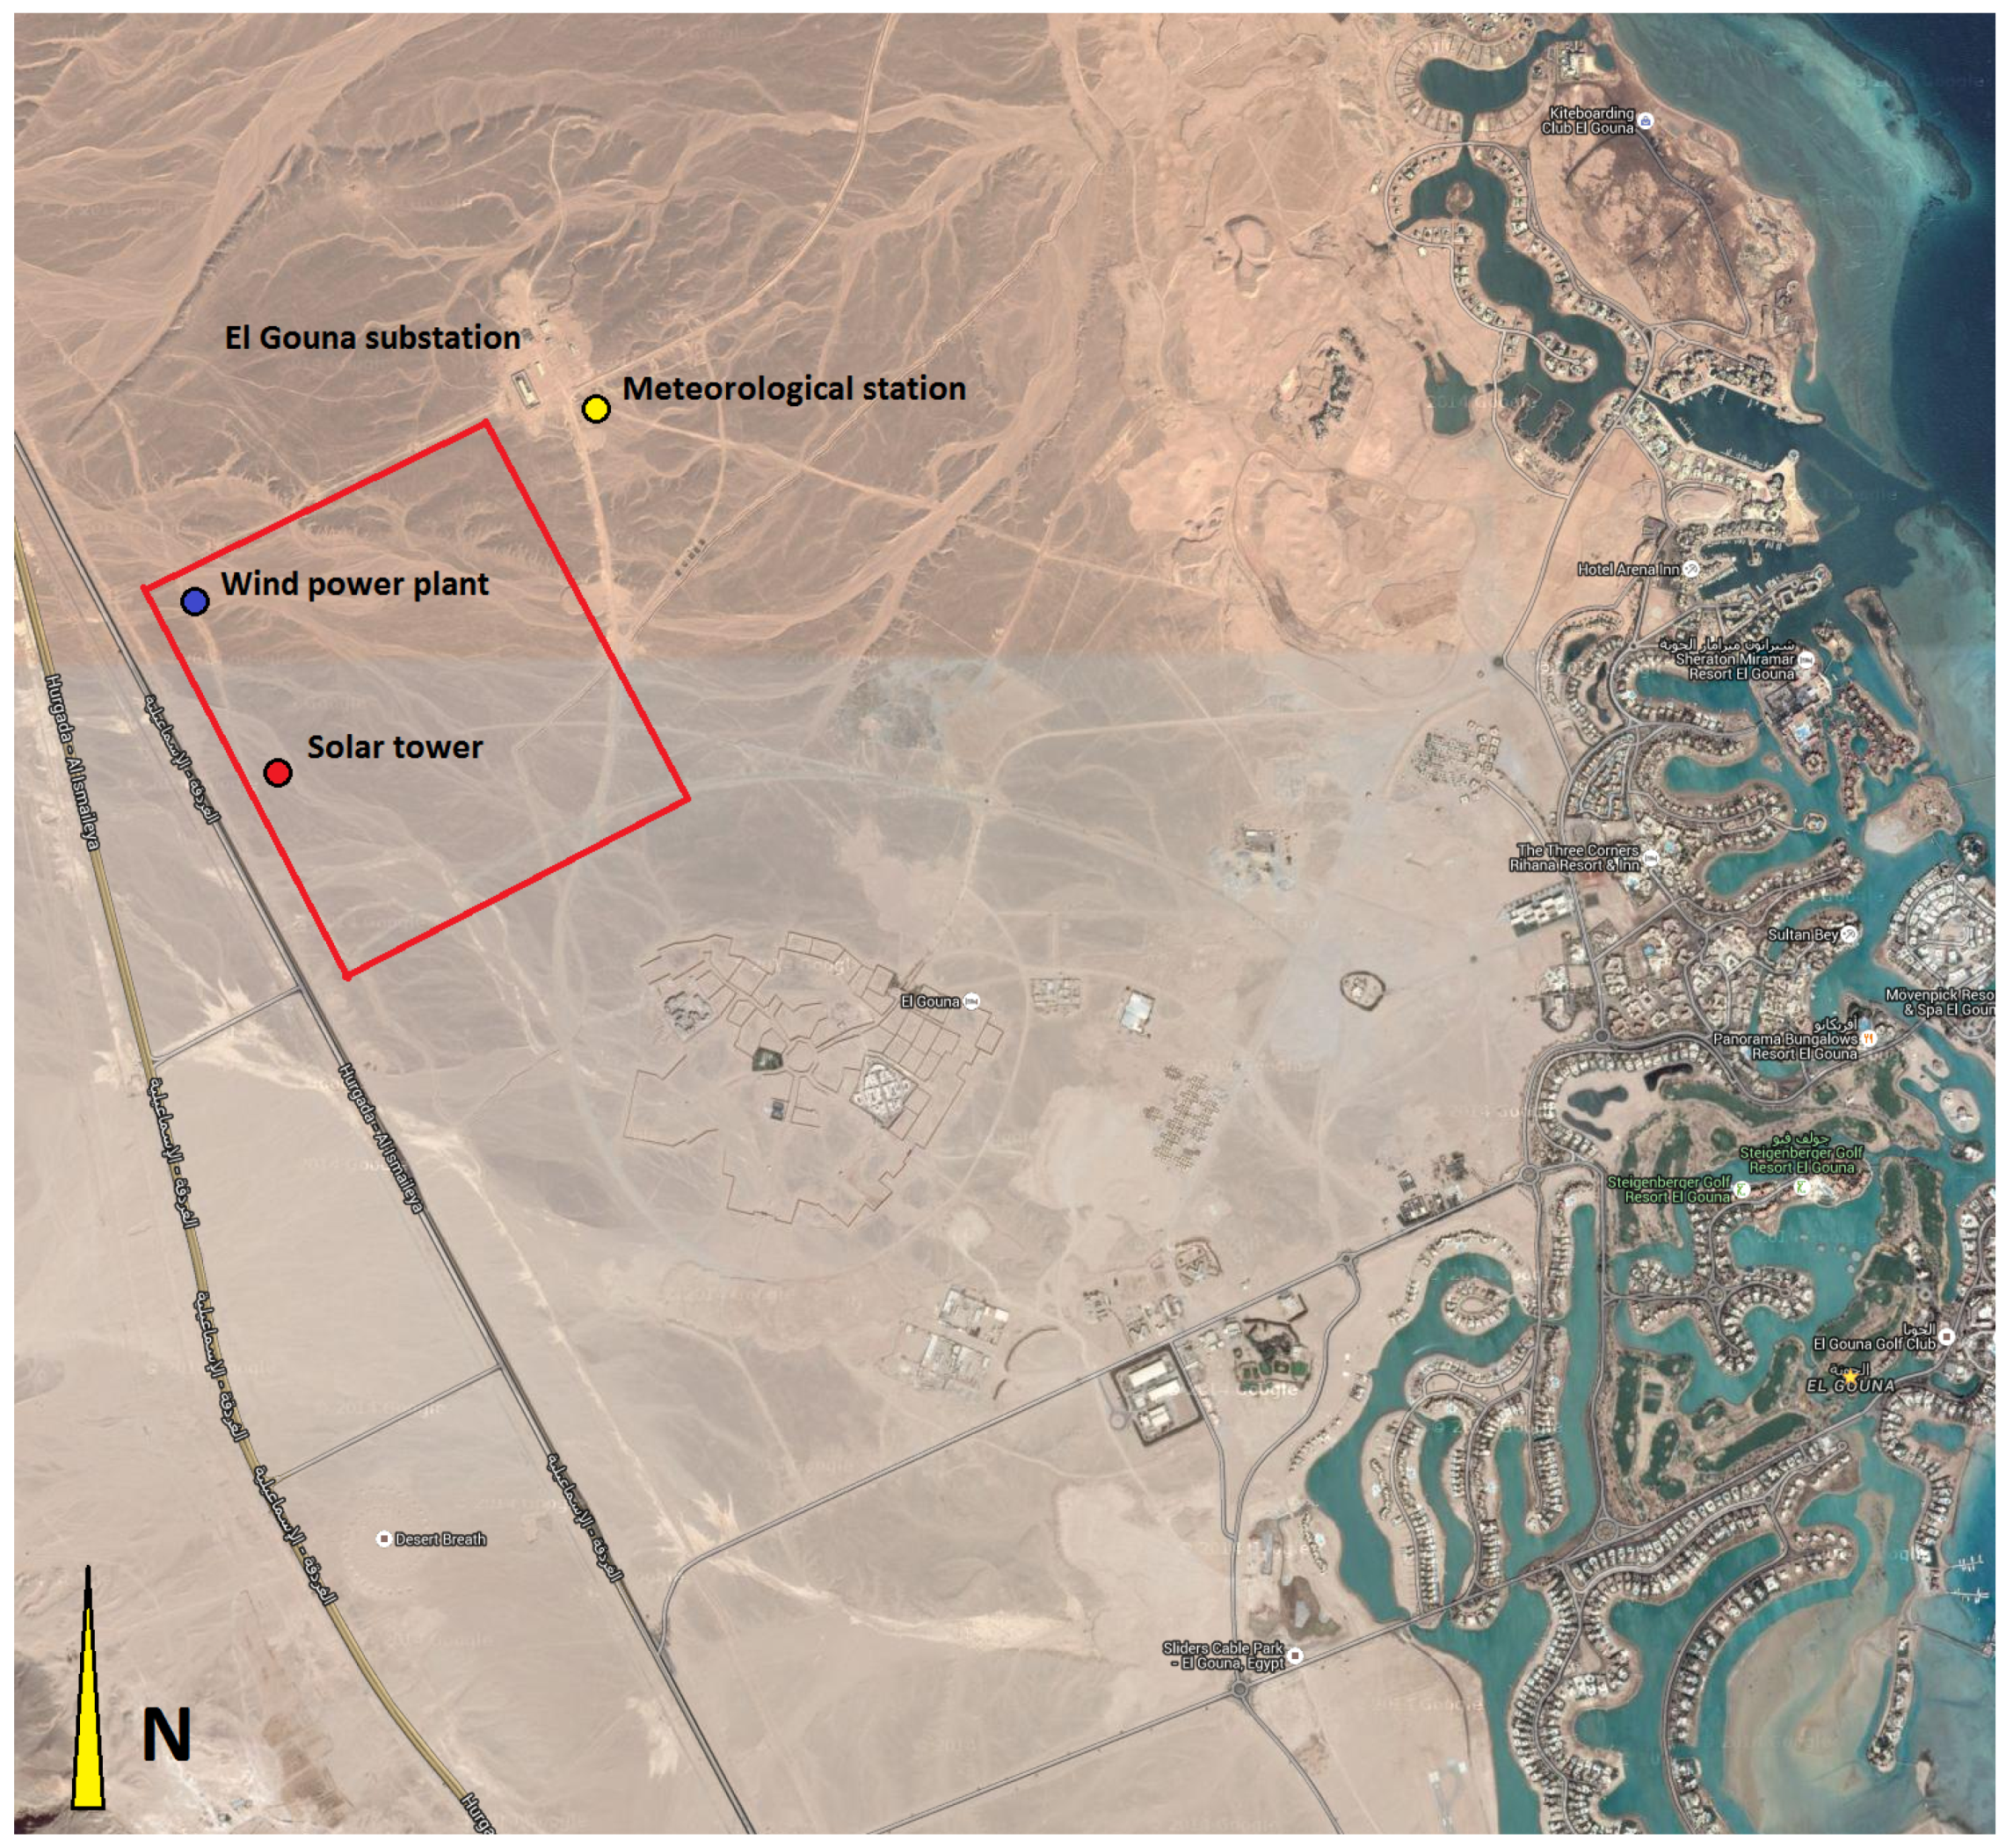 Sustainability Free FullText Renewable Energy Supply And - Map of egypt el gouna